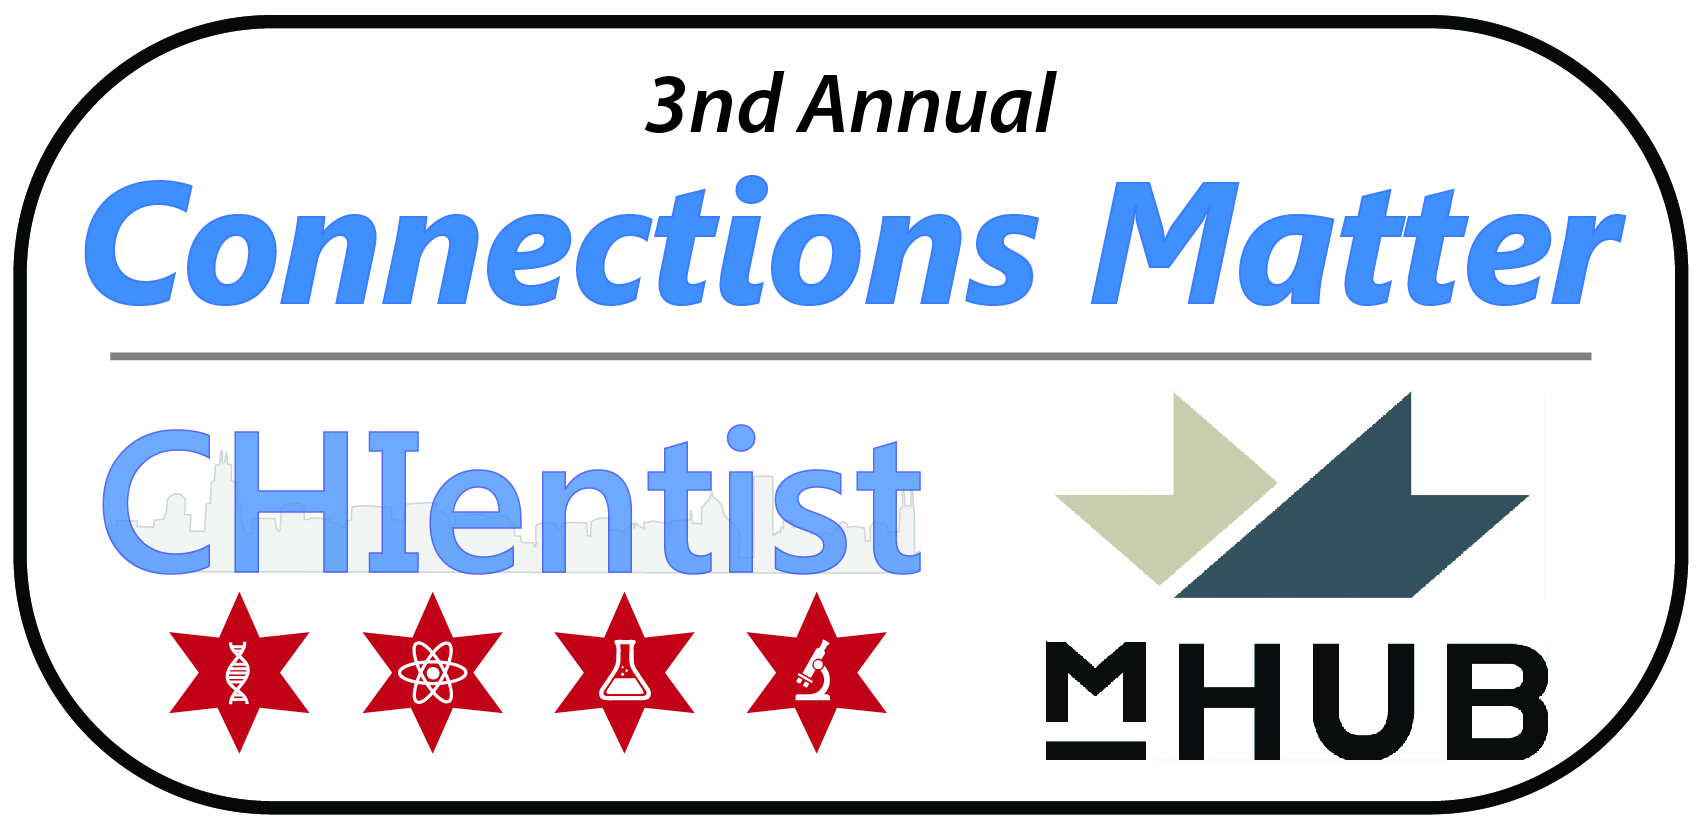 CHIentist Presents: 3rd Annual Connections Matter